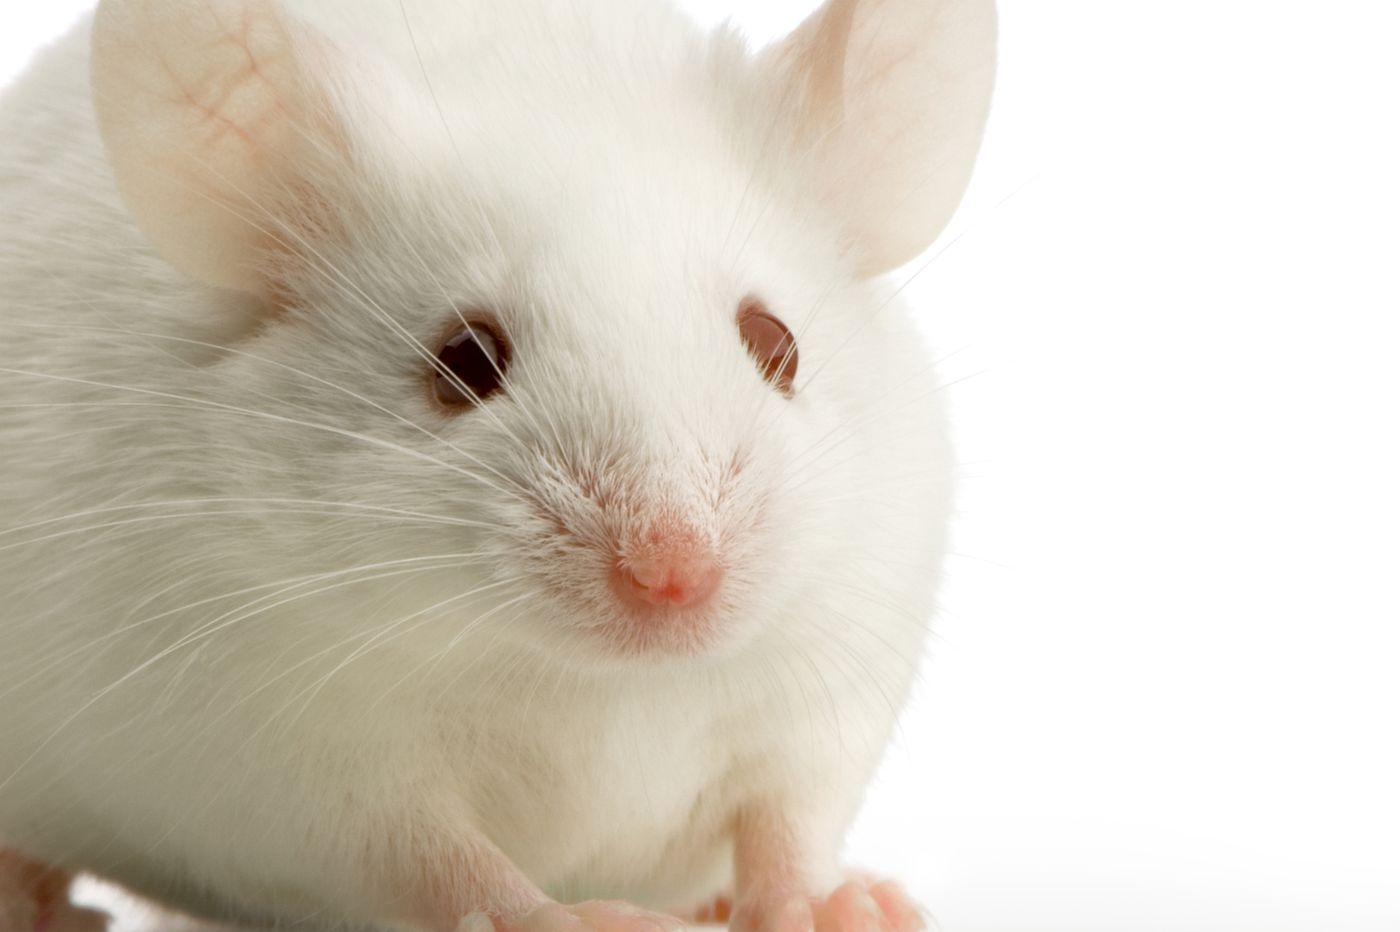 Mice that vaped nicotine for a year had big increase in tumor growth